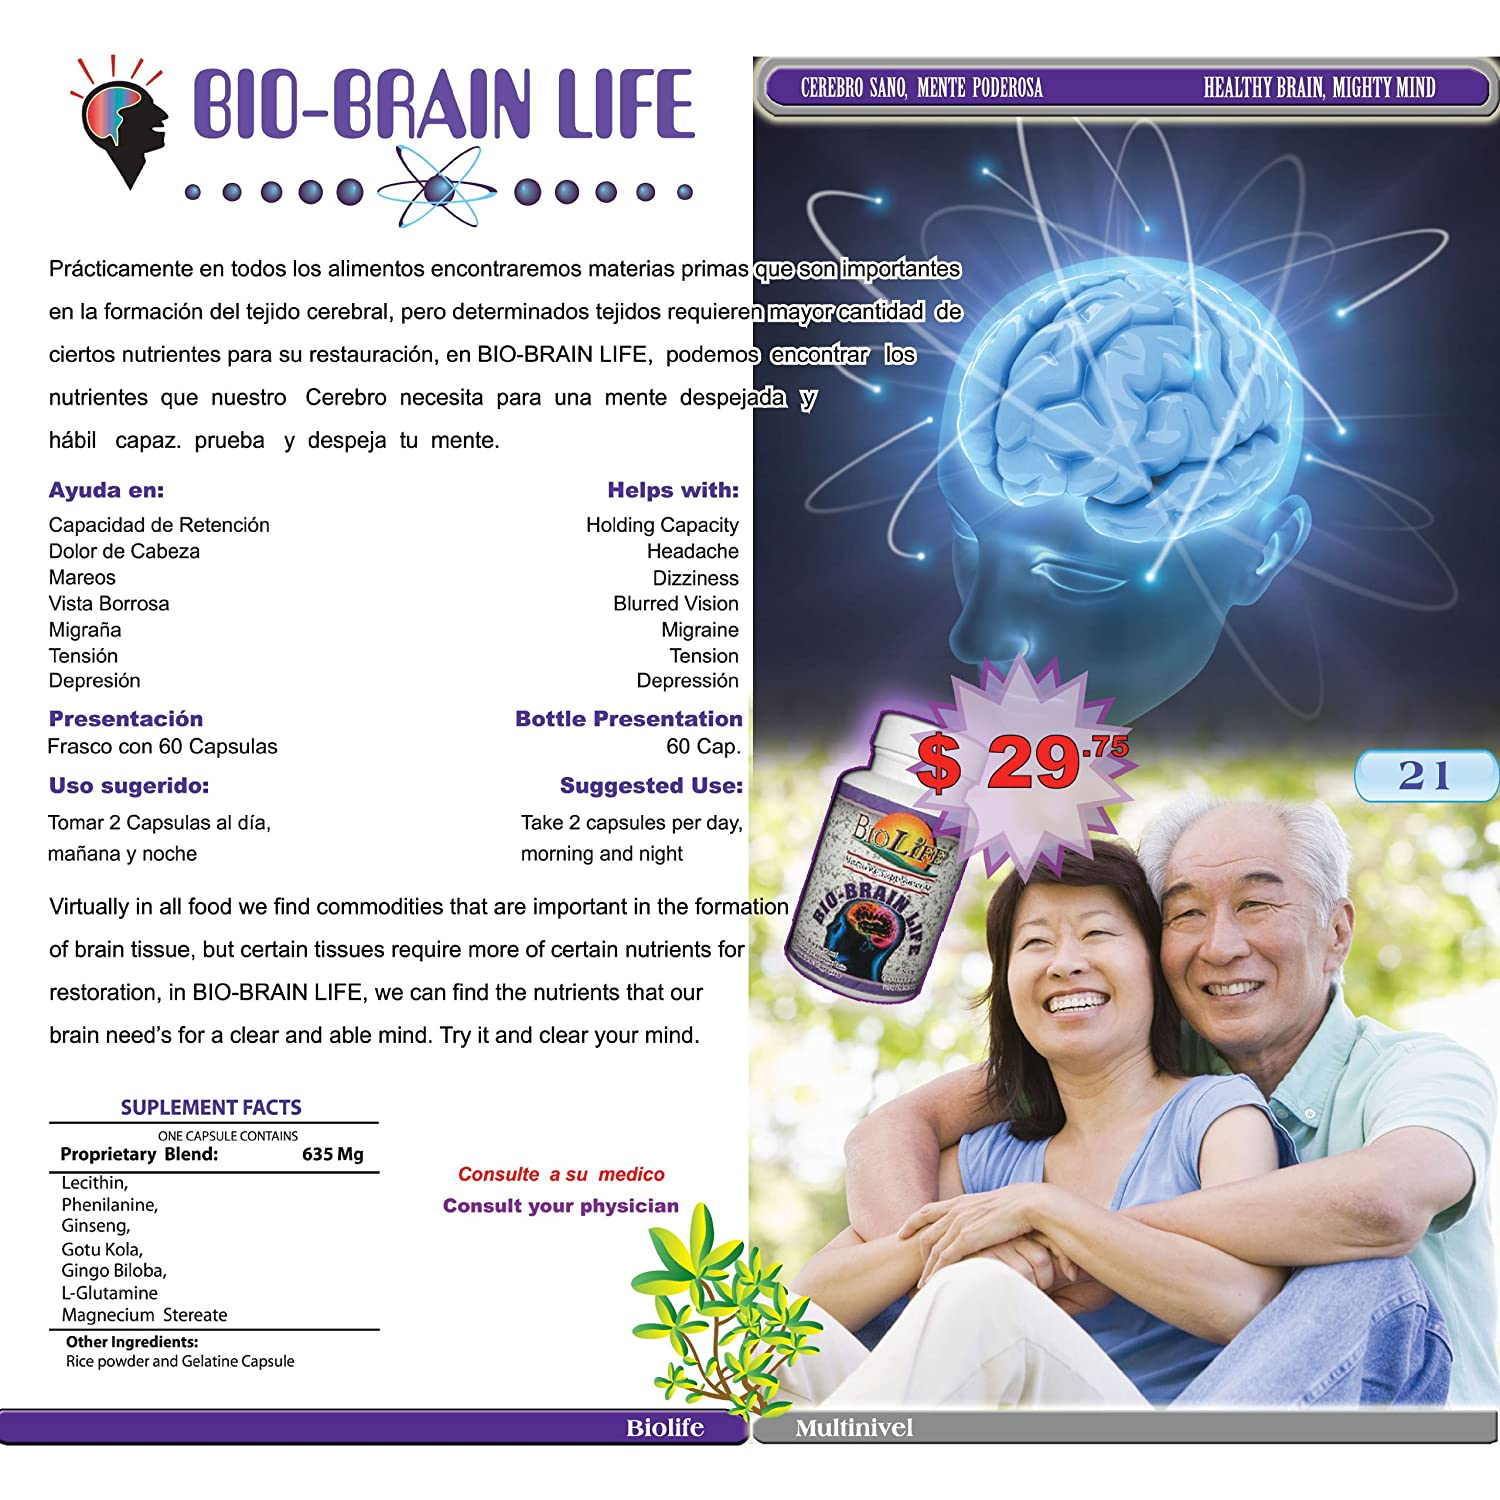 Amazon.com: Bio Brain Life 60 Caps Supplement with Lecithin, Ginseng, Gotu Kola and Gingo Biloba 635mg, Supports and Maintains Memory, Concentration, ...